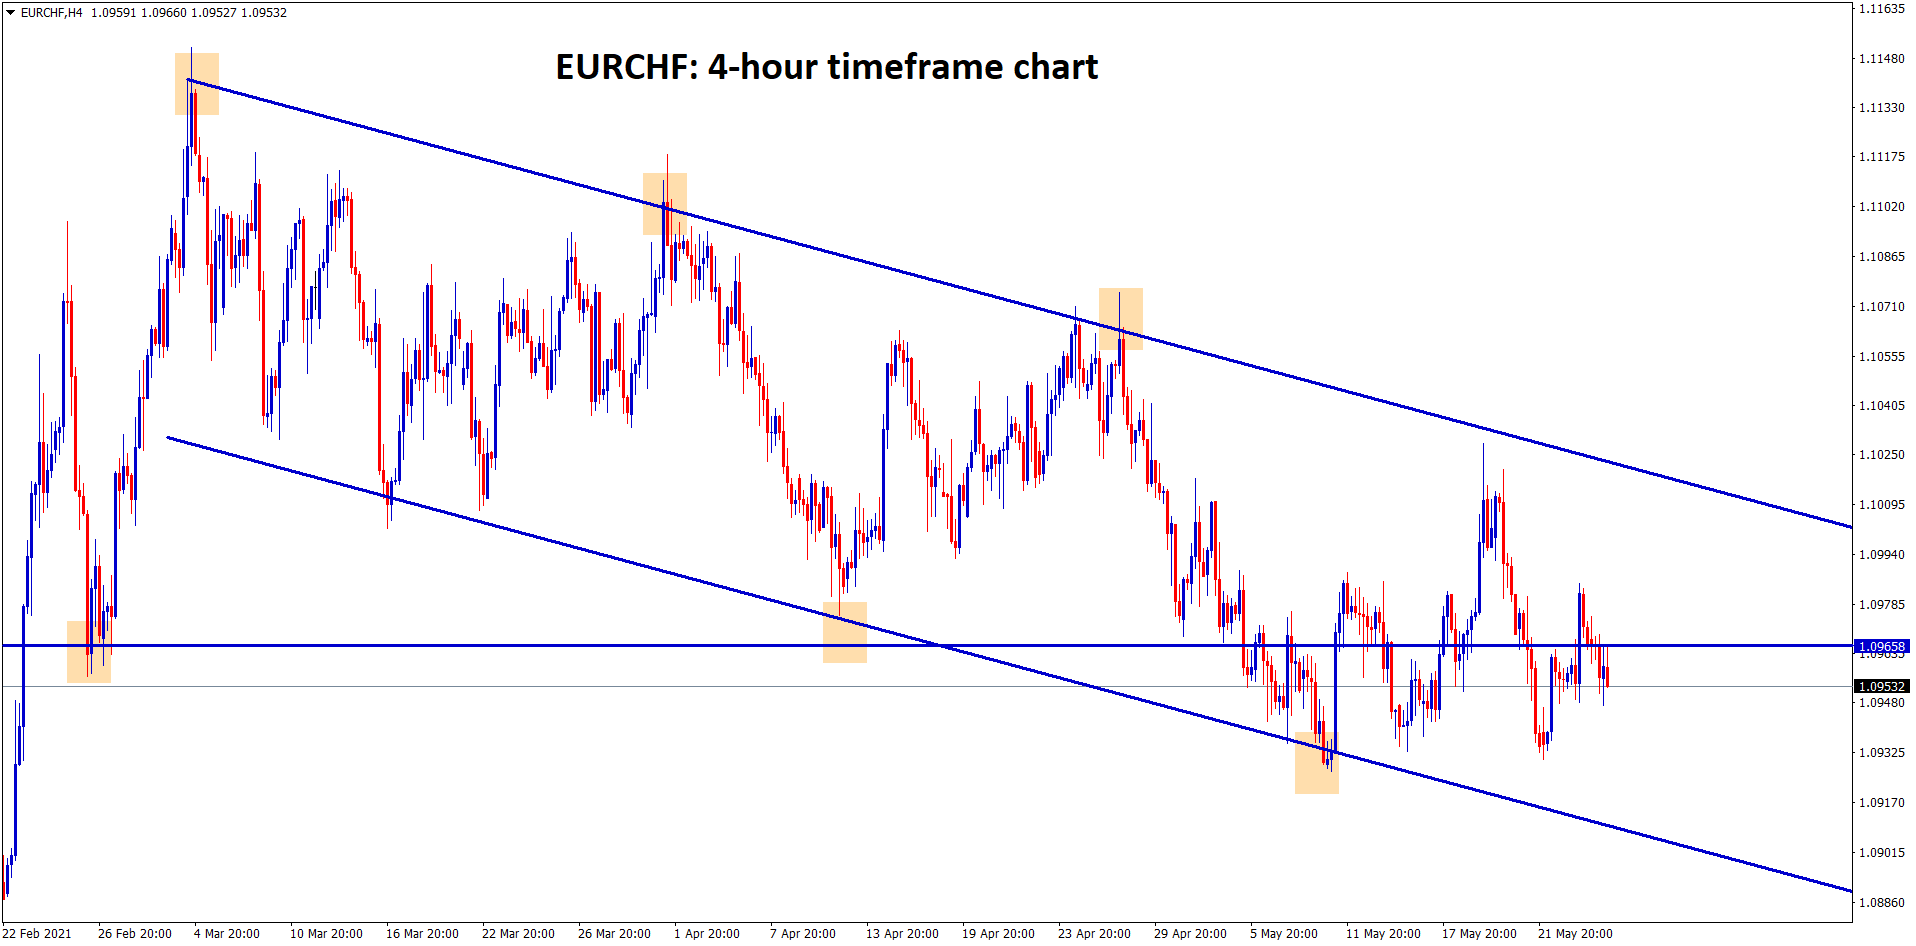 EURCHF is moving between the descending channel range